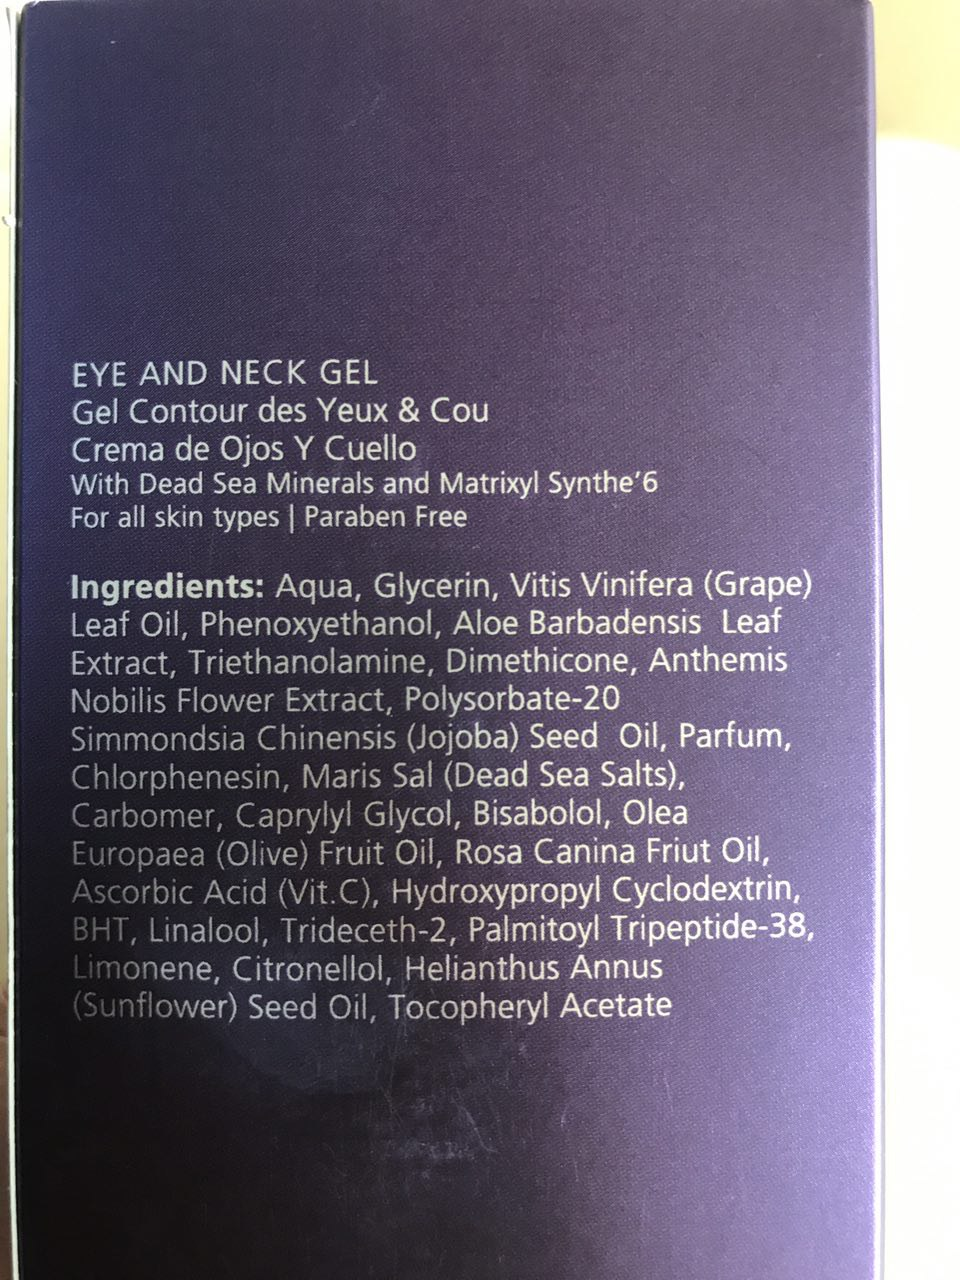 Ingredients of the Jericho Premium Eye and Neck Gel